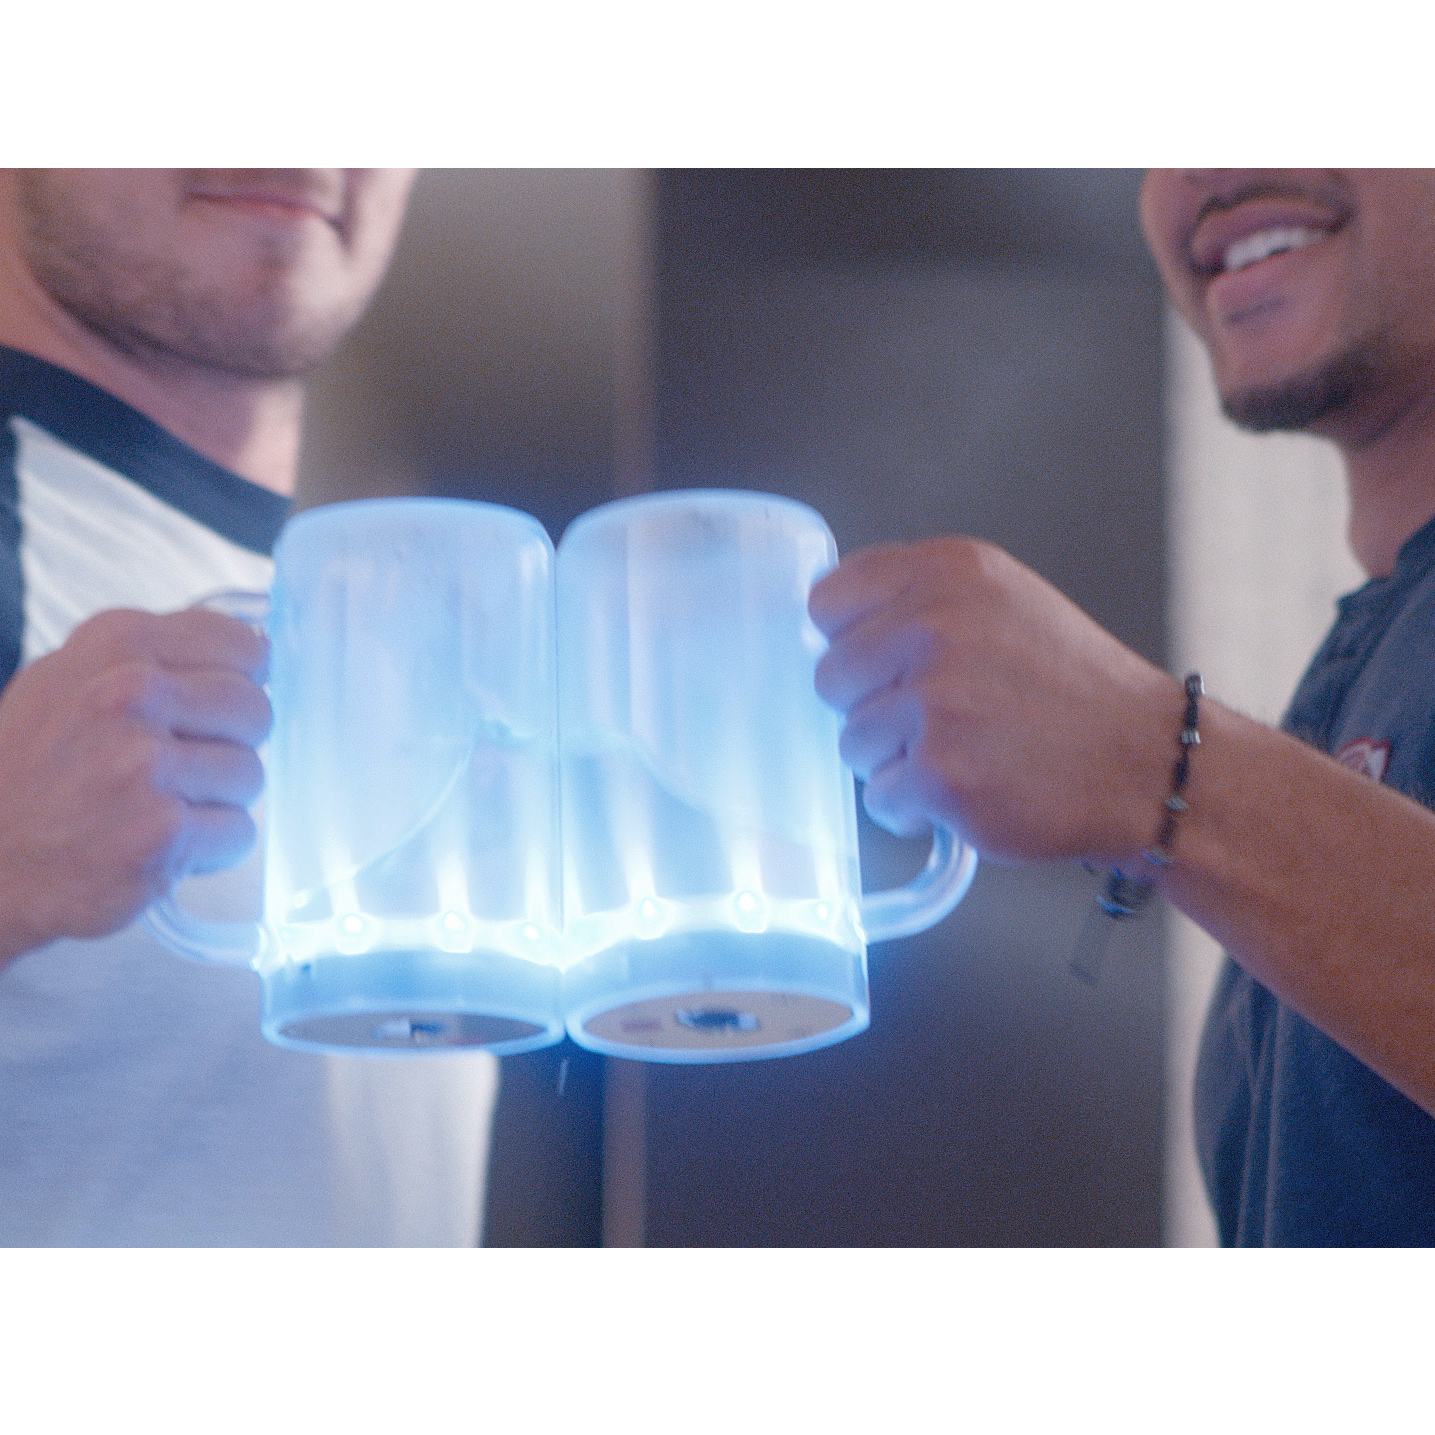 'Smart Beer Mug' Tells You When It's Empty, Can Call Cab at End of Night